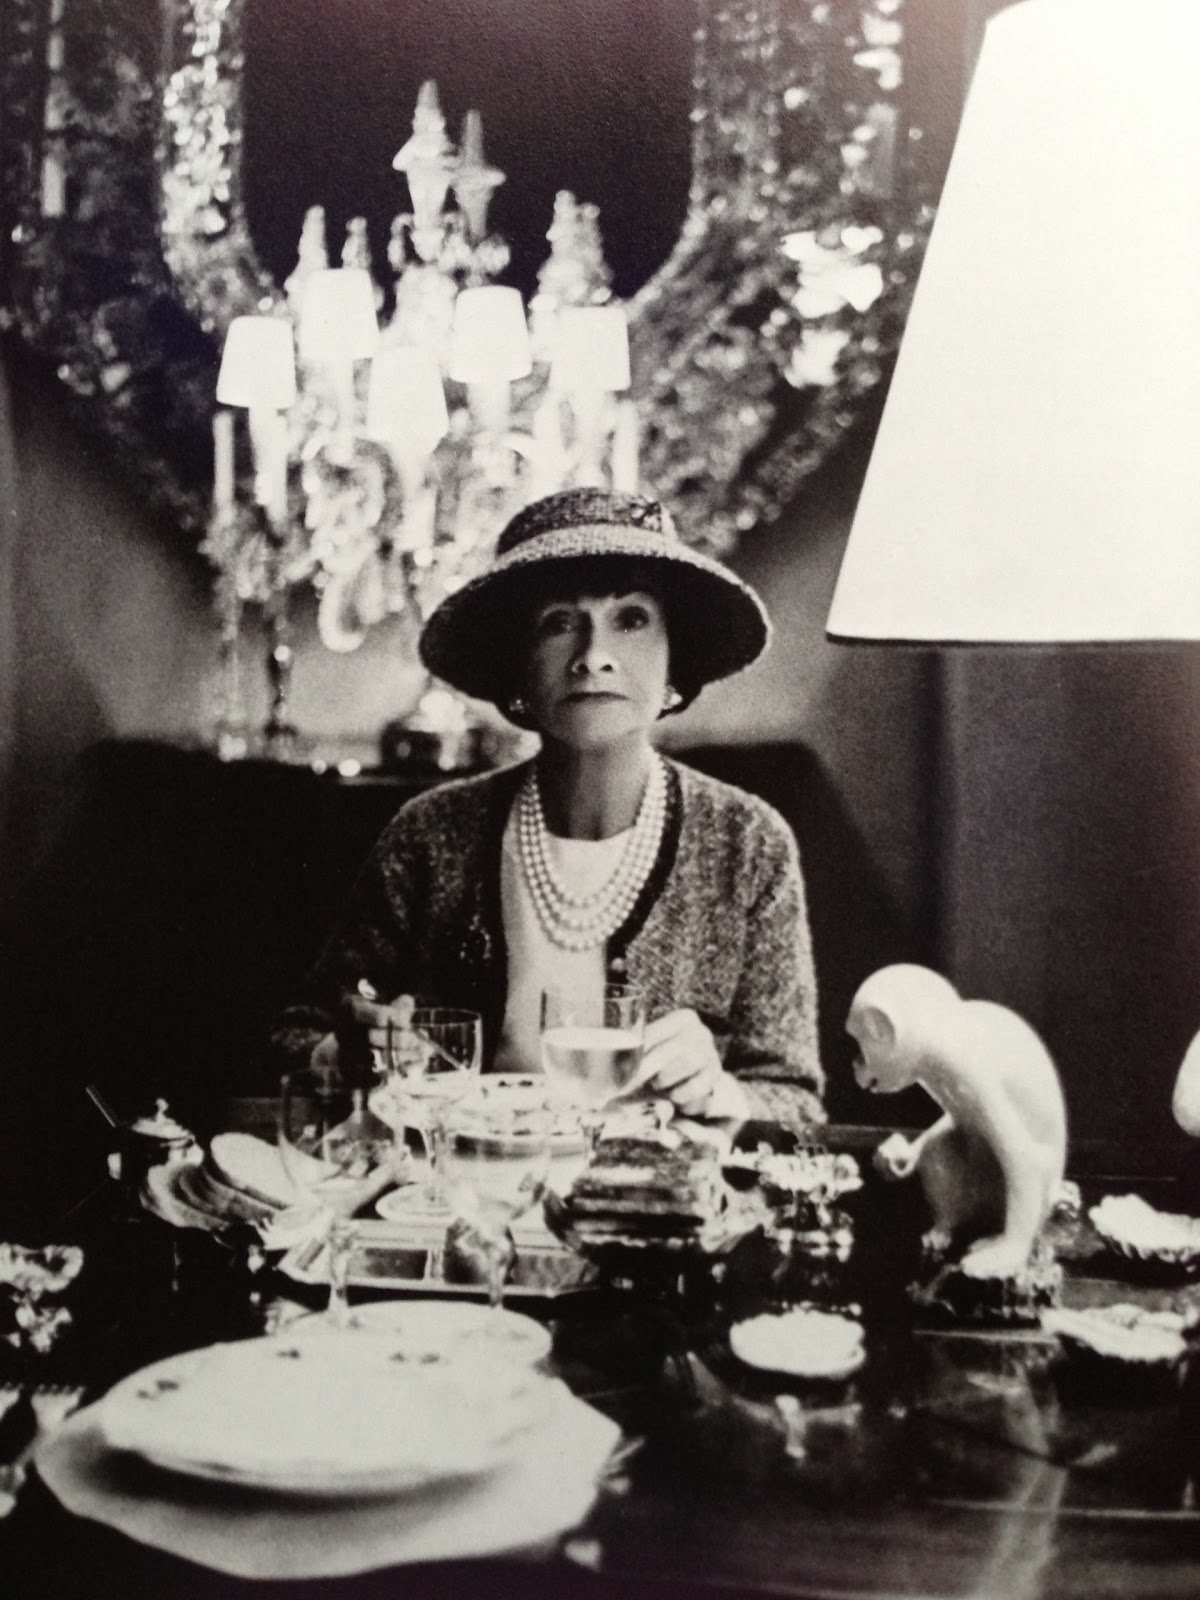 Coco Chanel 告訴你 女人最理想的衣櫥應該有6大元素: Rare Vintage: RARE Vintage Weekend Style And Inspiration